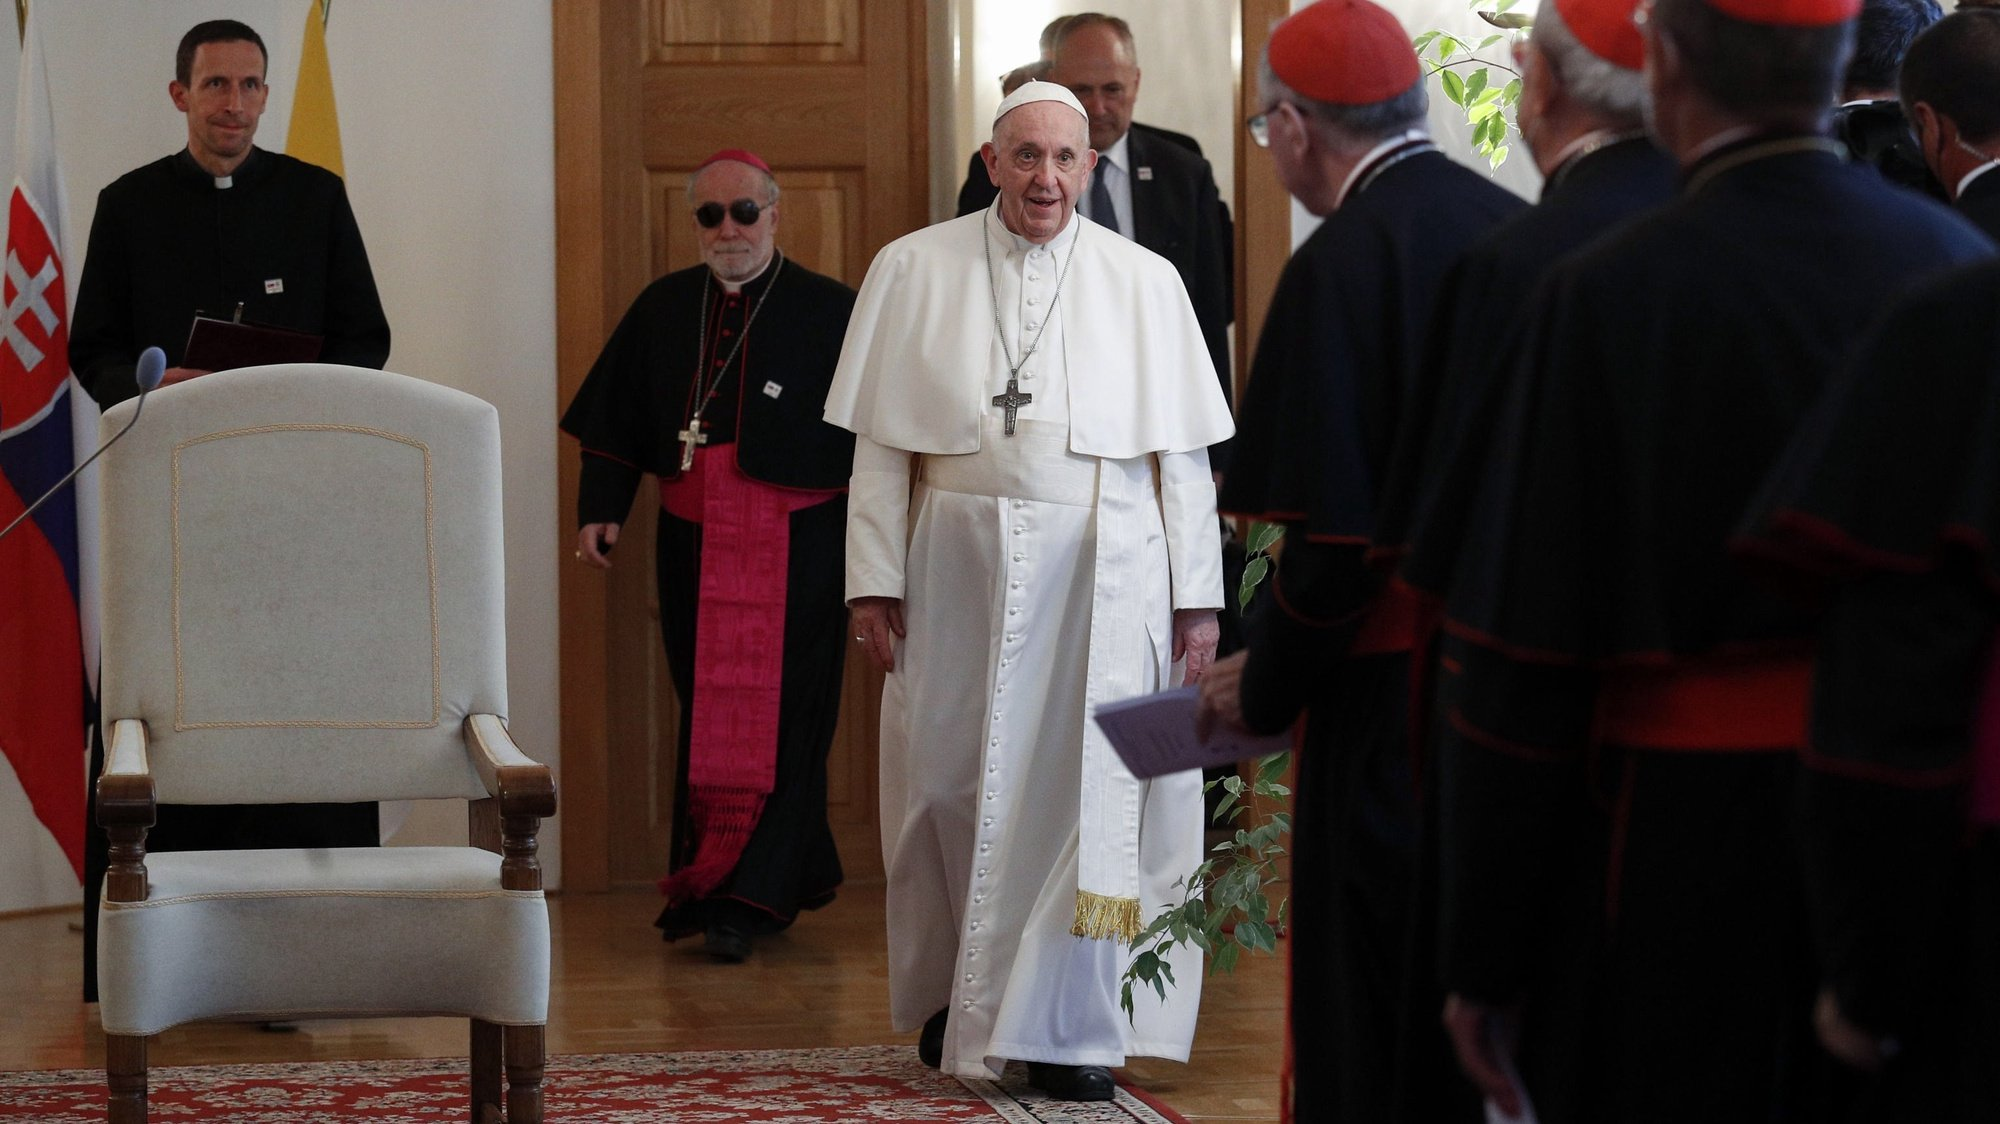 epa09463924 Pope Francis attends a meeting with Bishops at the Apostolic Nunciature in Bratislava, Slovakia, 12 September 2021. Pope Francis is on a three days visit to Slovakia, under the official motto: 'With Mary and Joseph on the way to Jesus'.  EPA/REMO CASILLI / POOL